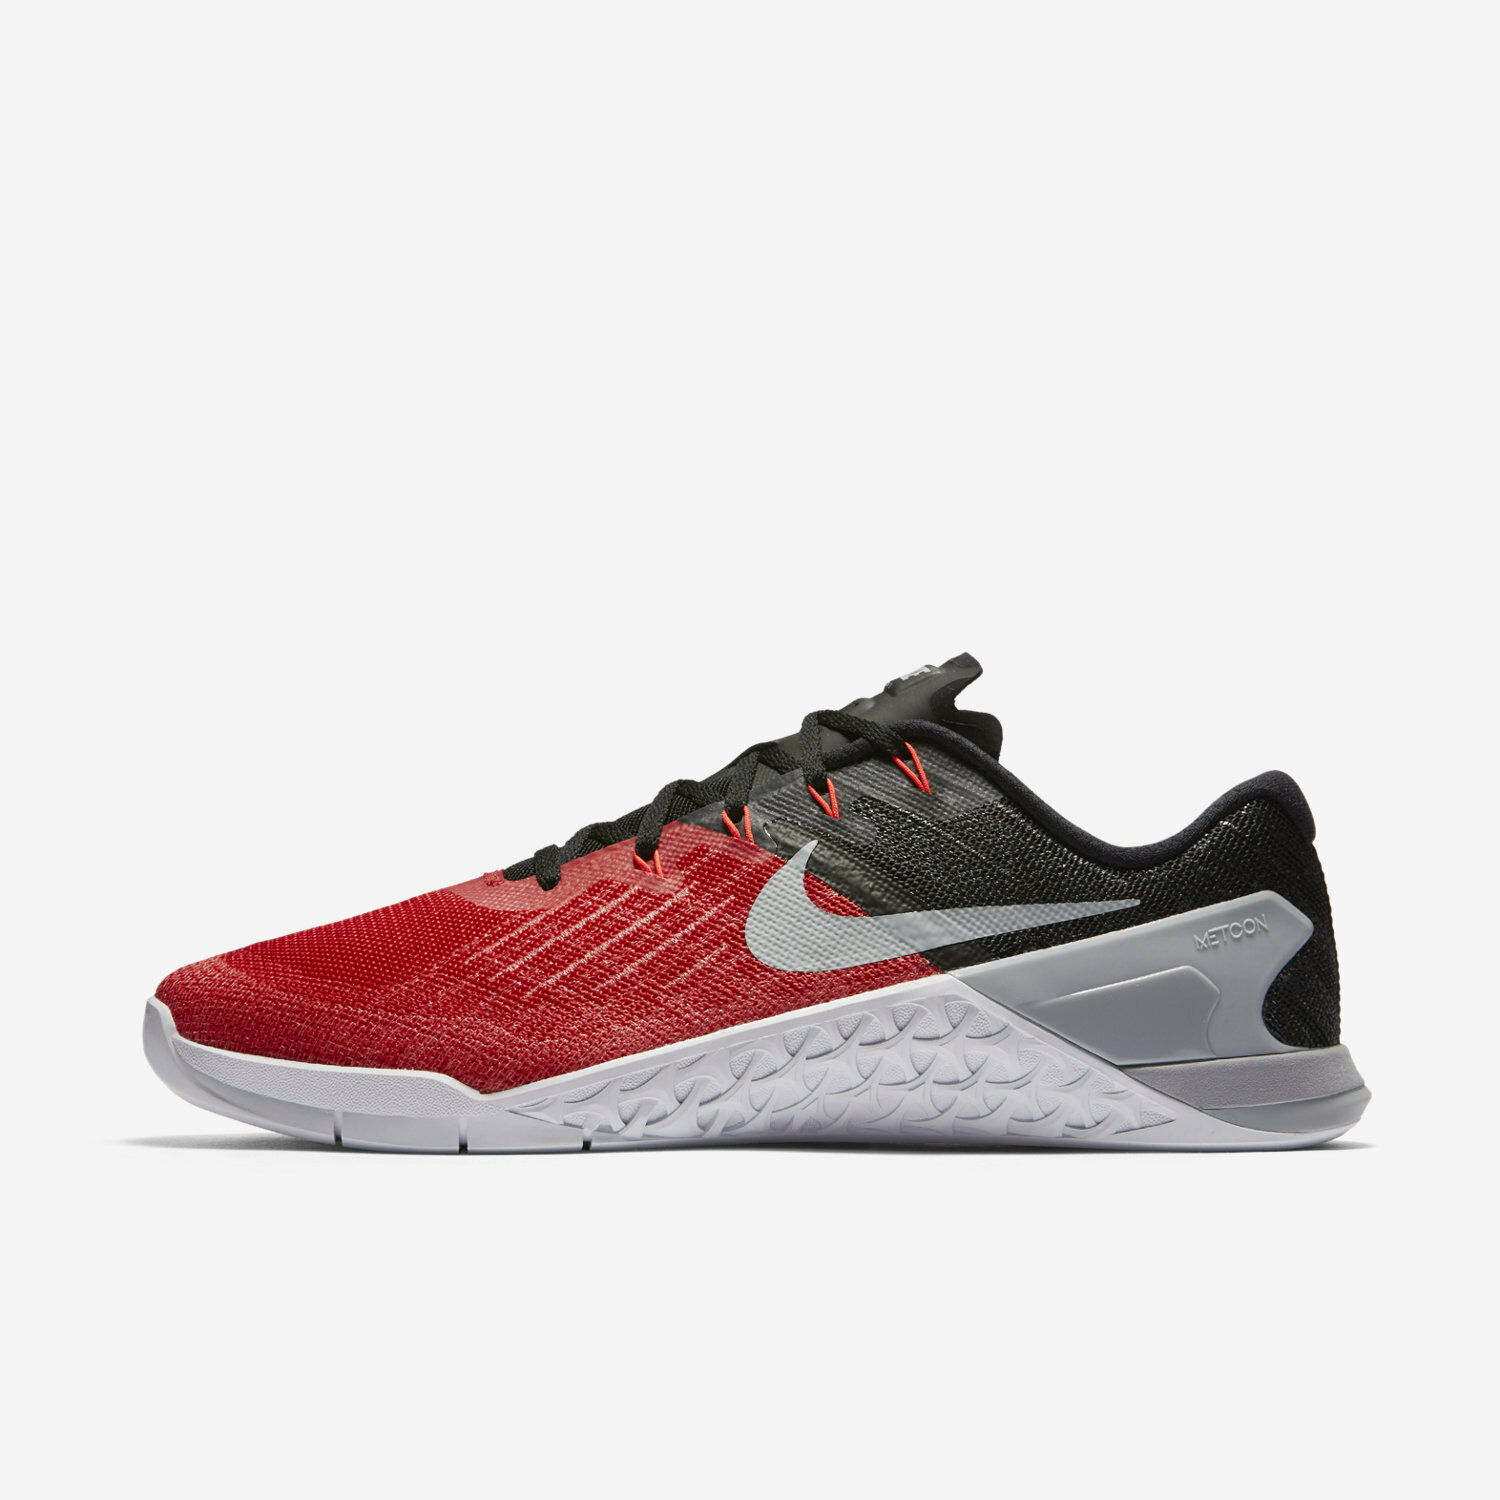 Men's Nike Metcon 3 Sz 8.5-11.5 Red/Grey/Black 852928-600 FREE SHIPPING  Special limited time